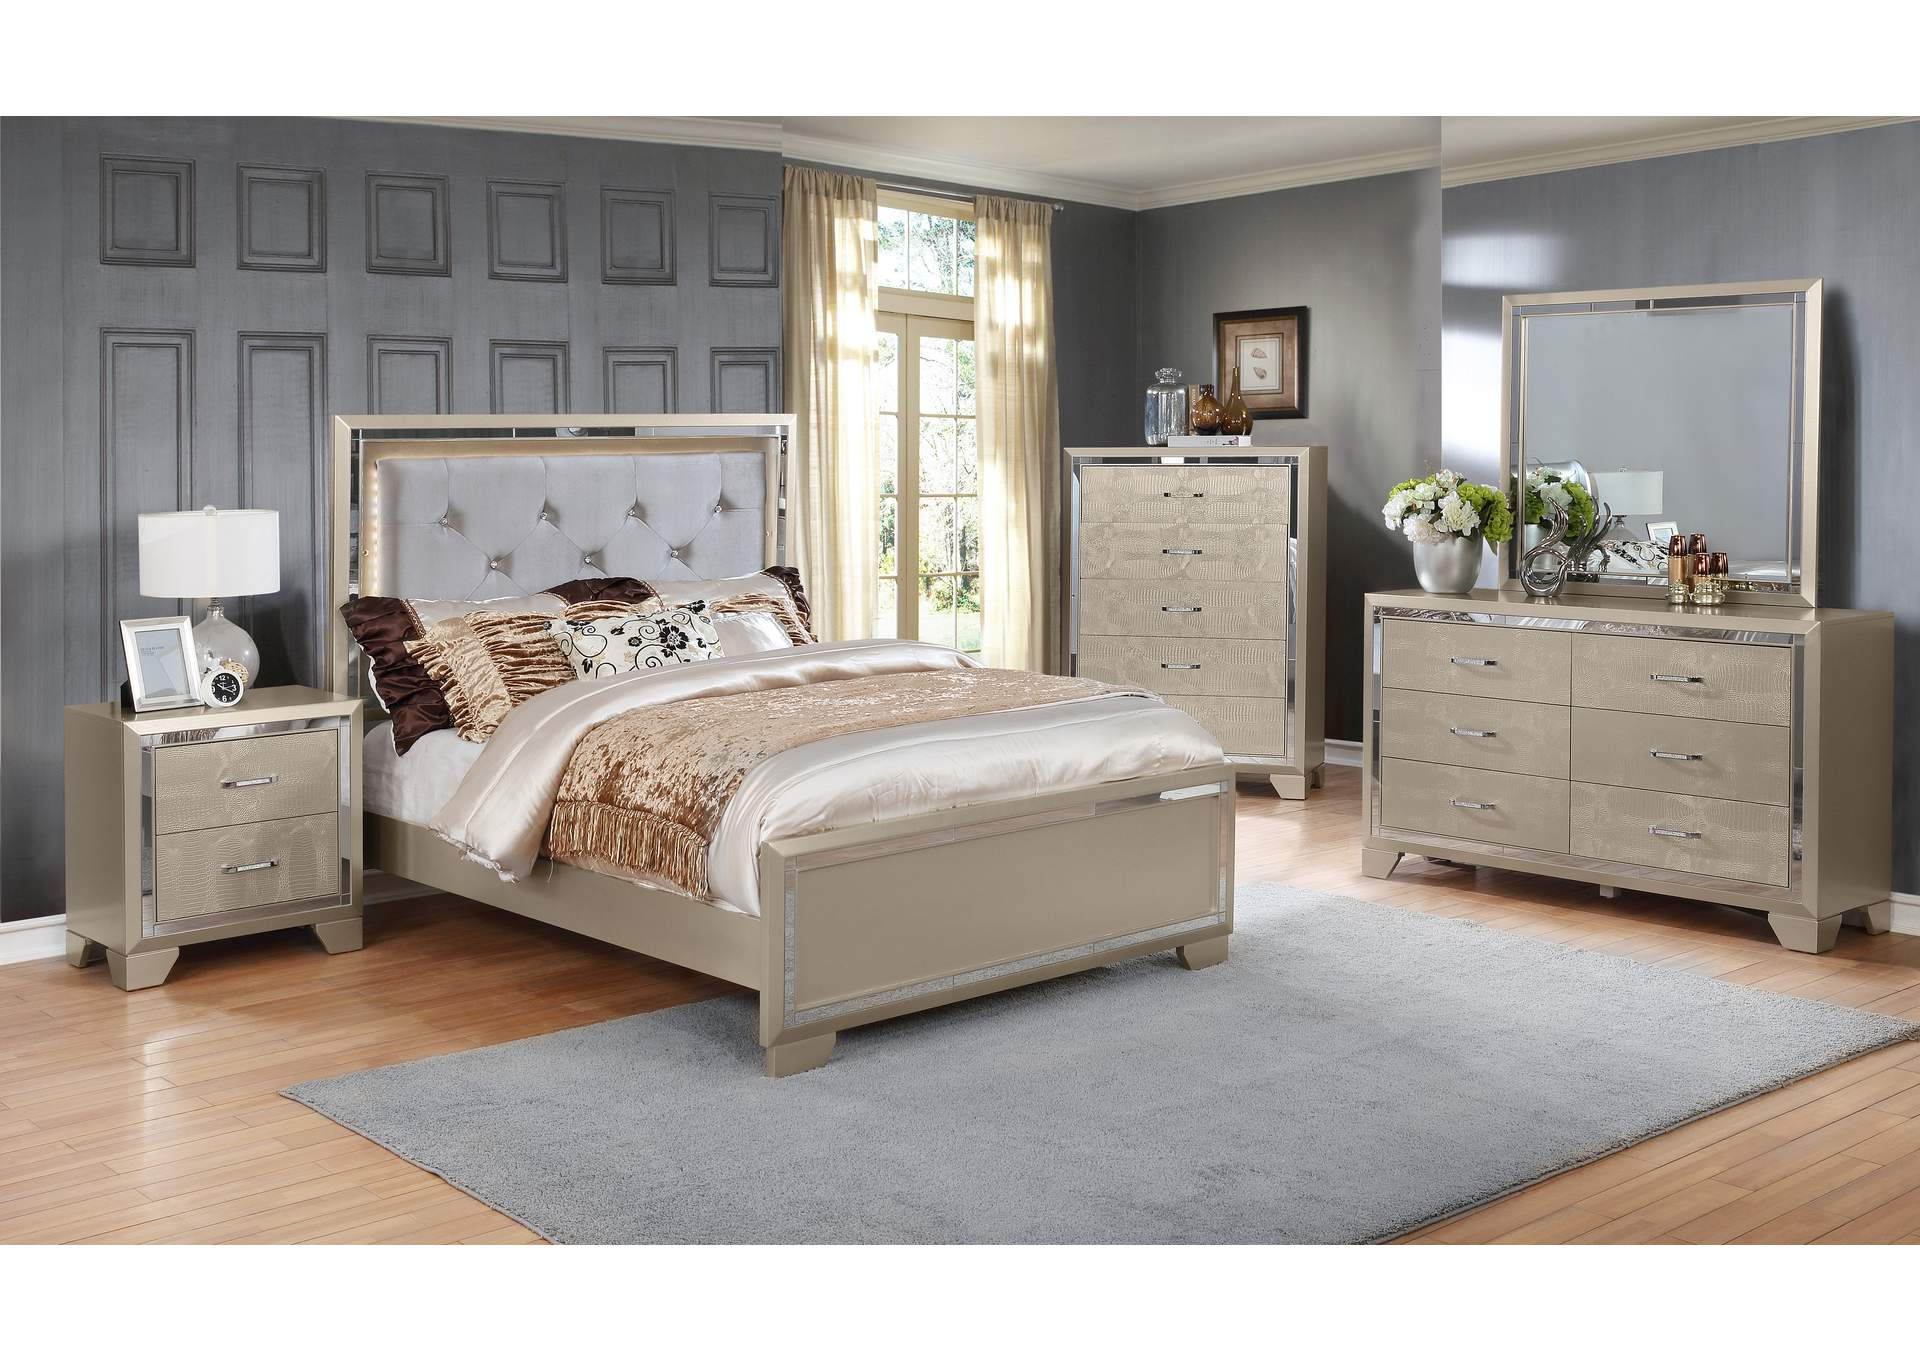 Rozzelli Pearl Panel Queen 4 Piece Bedroom Set W/ Chest, Dresser & Mirror,Global Trading